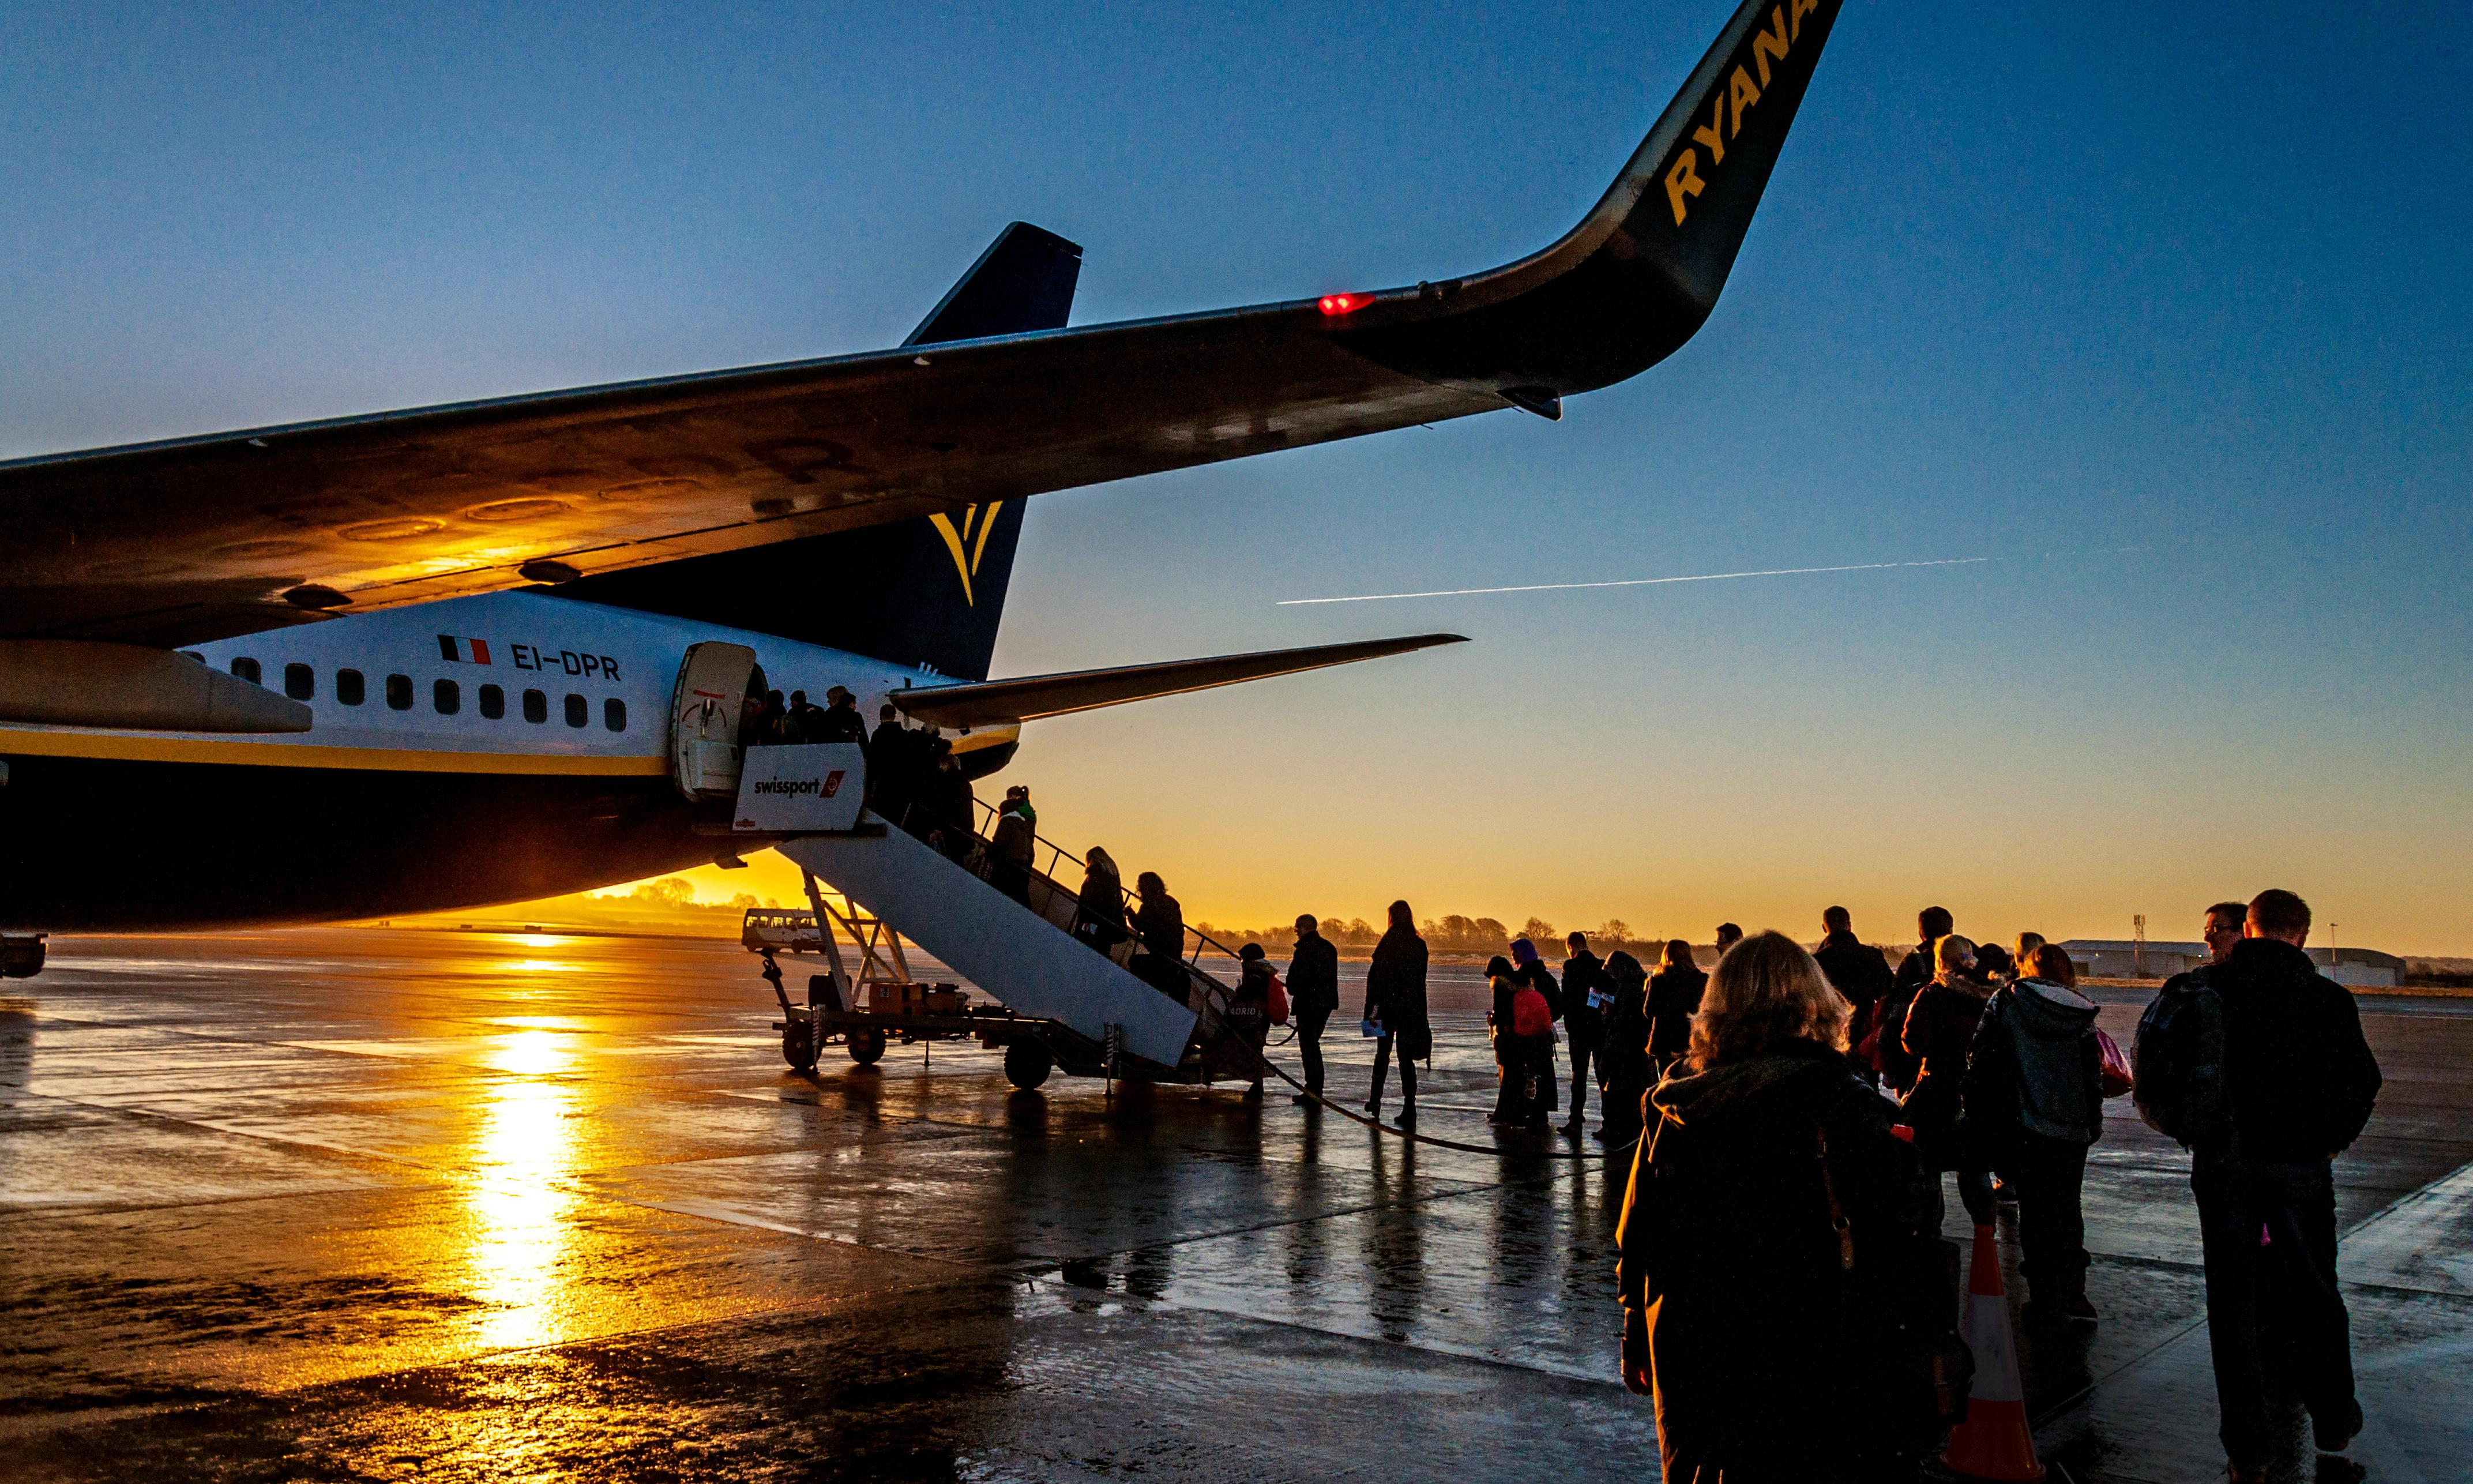 1% of English residents take one-fifth of overseas flights, survey shows